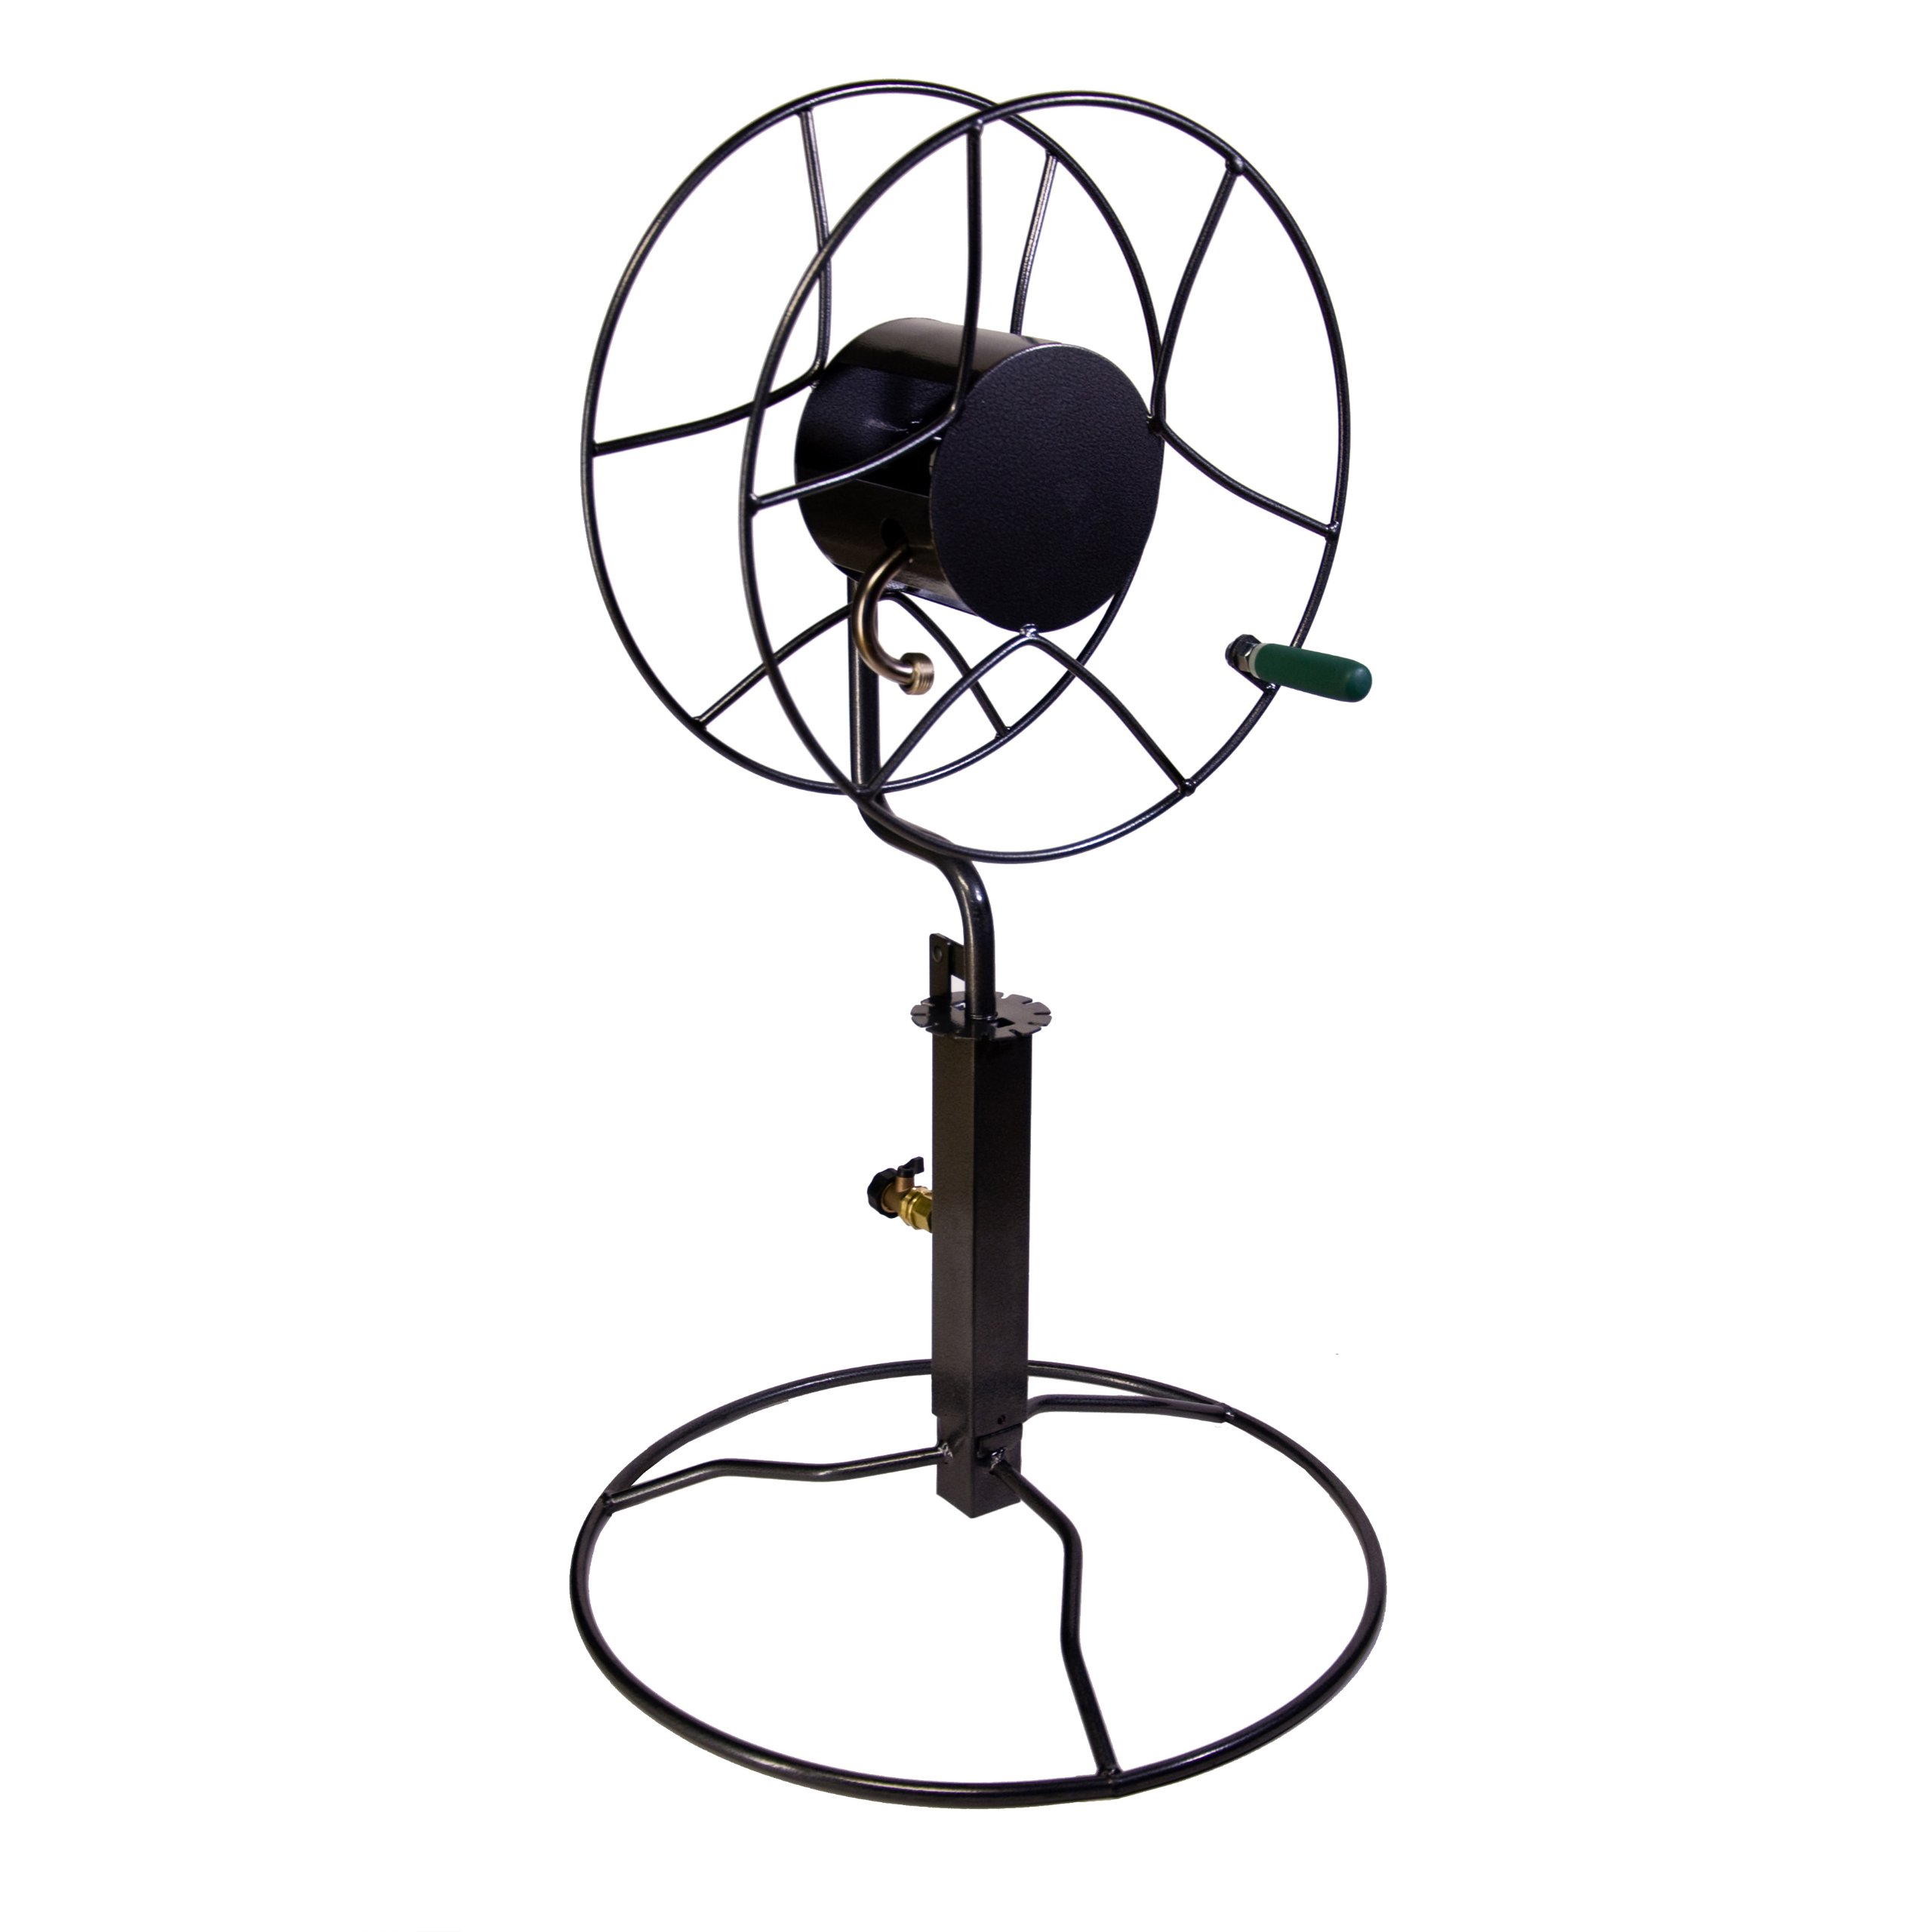 Yard Butler ISRPB-360 Free-Standing Hose Reel with Patio Base